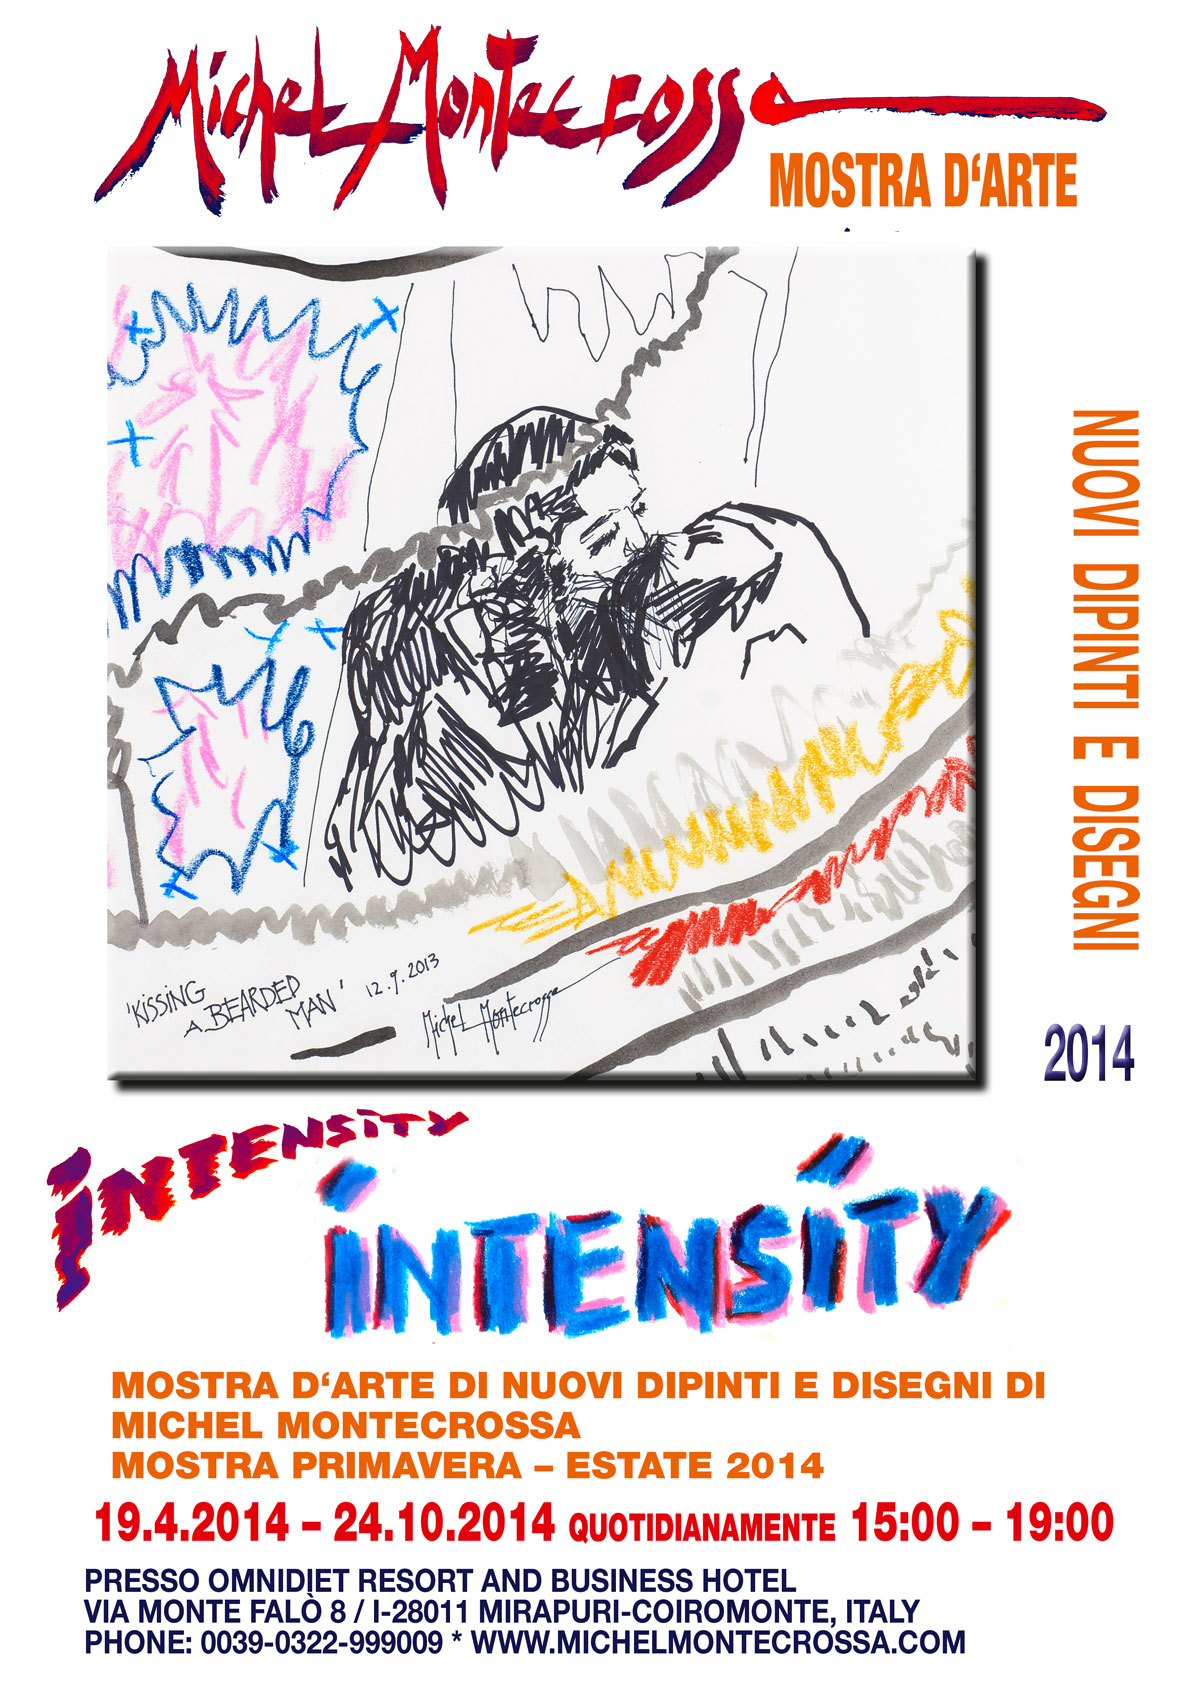 Intensity Exhibition